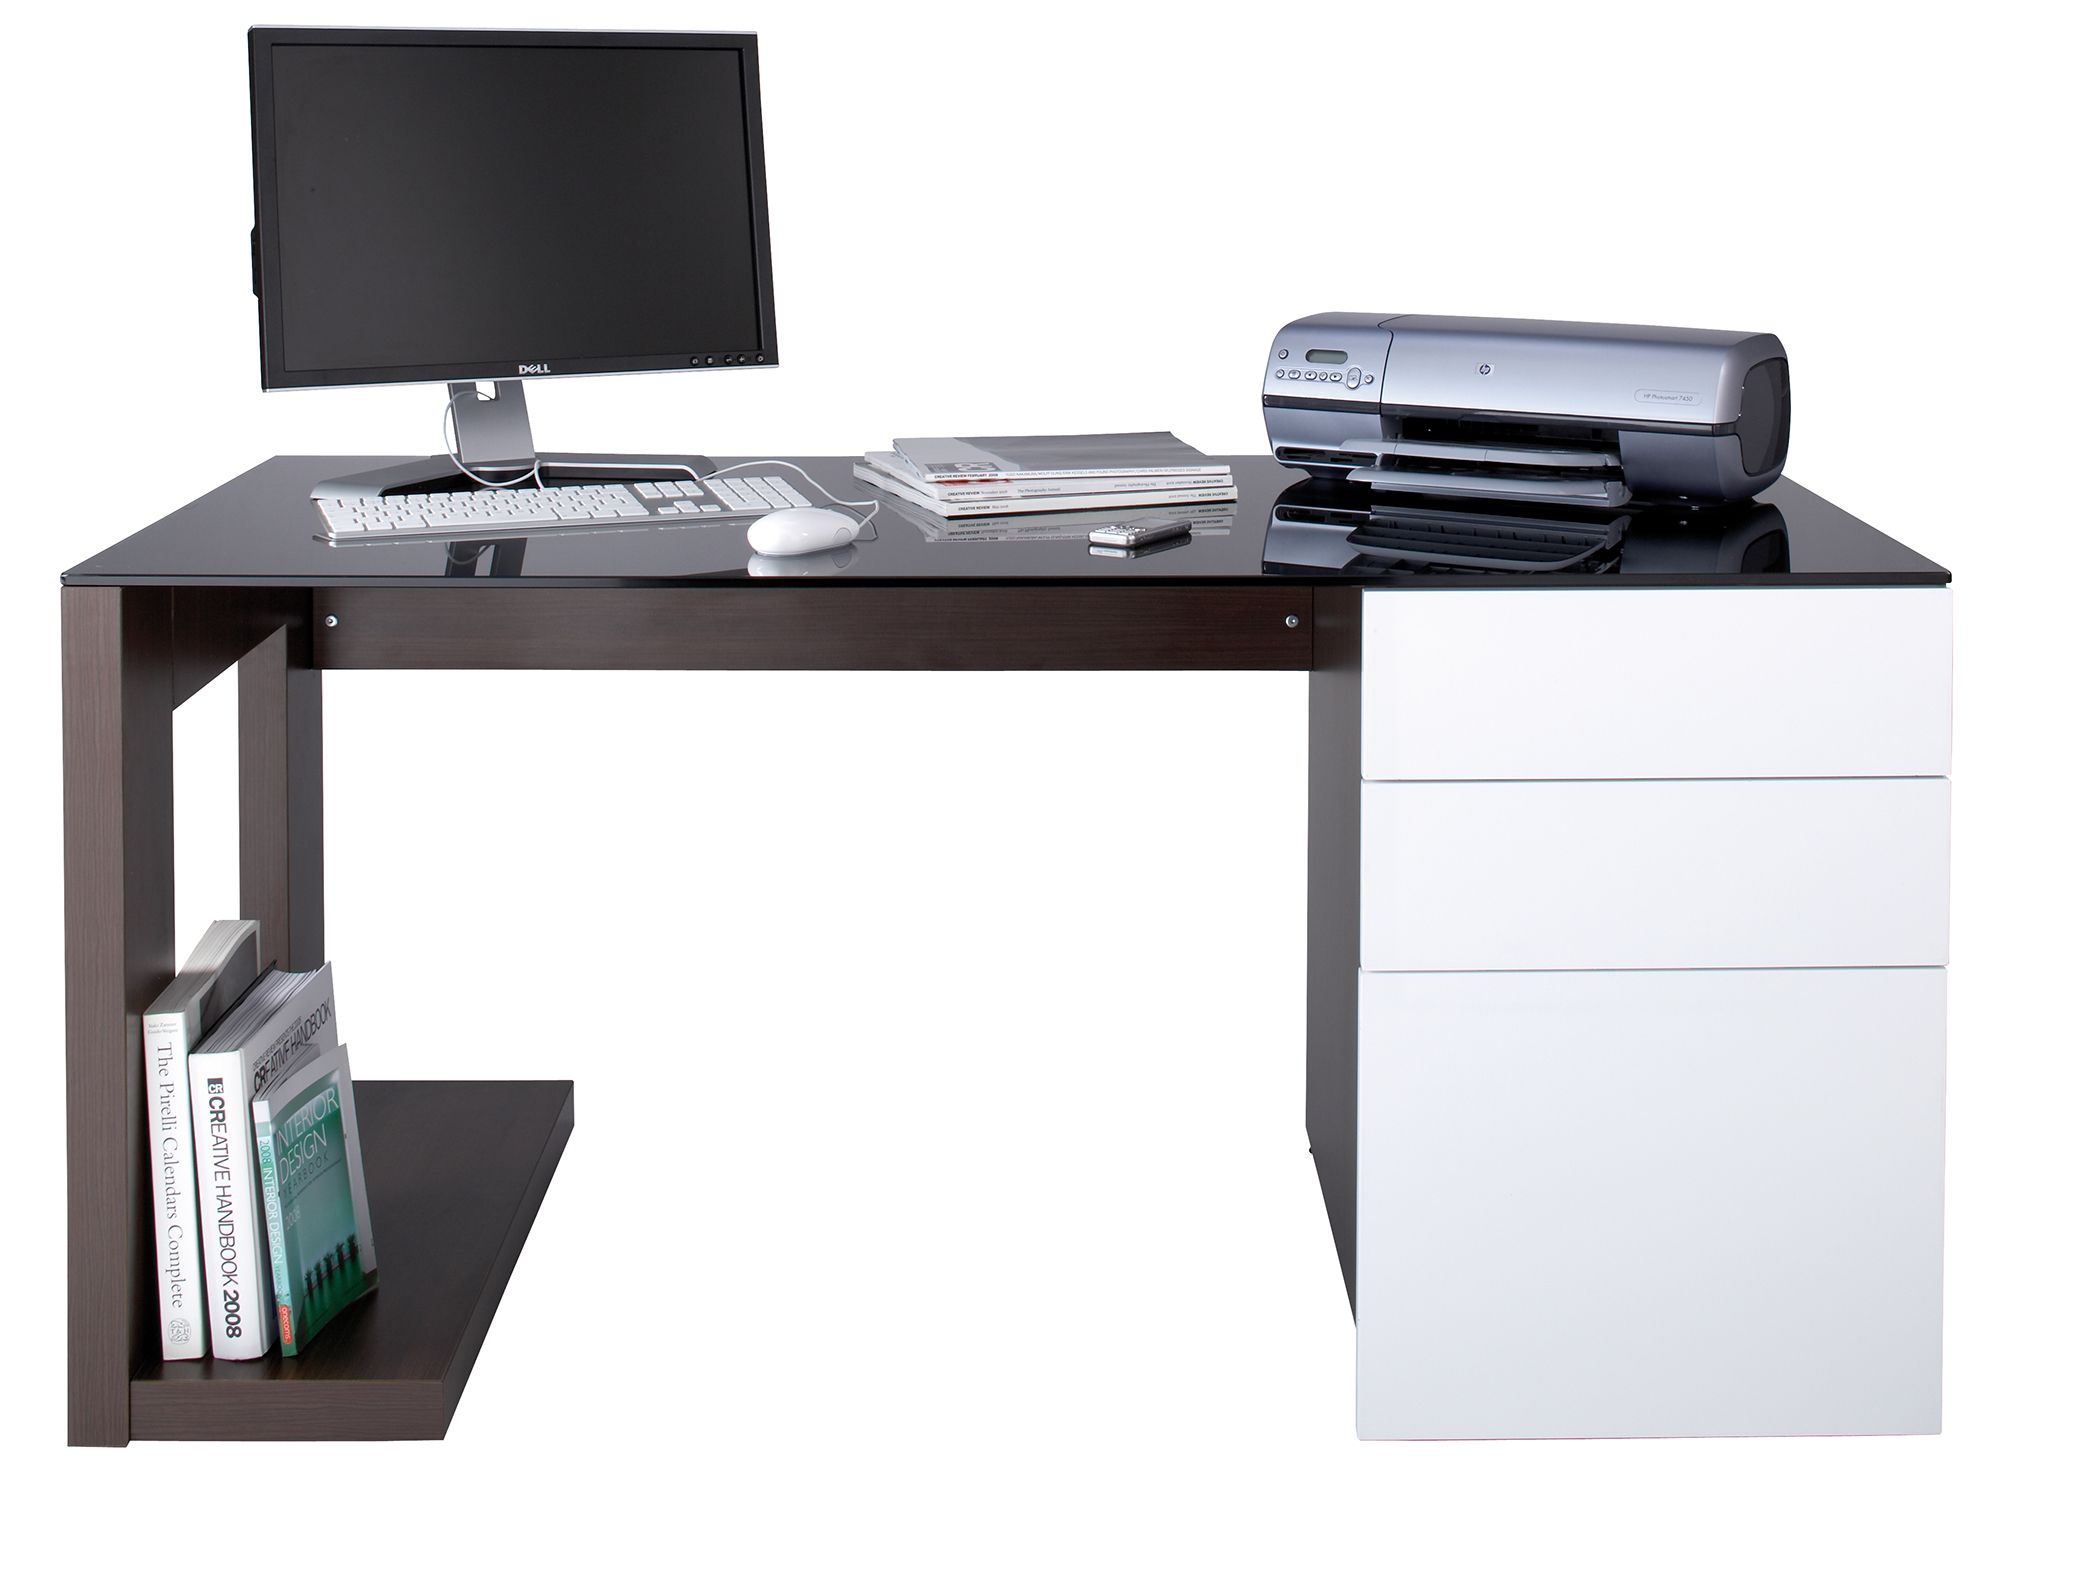 Architecture Awesome Modern Home Office Desk Design On Furniture Awesome Modern Computer Desk Design Ideas White Wooden Compter And Minimalist Desks For Your Home Office 30 Fabulous For Functional Enjoyable